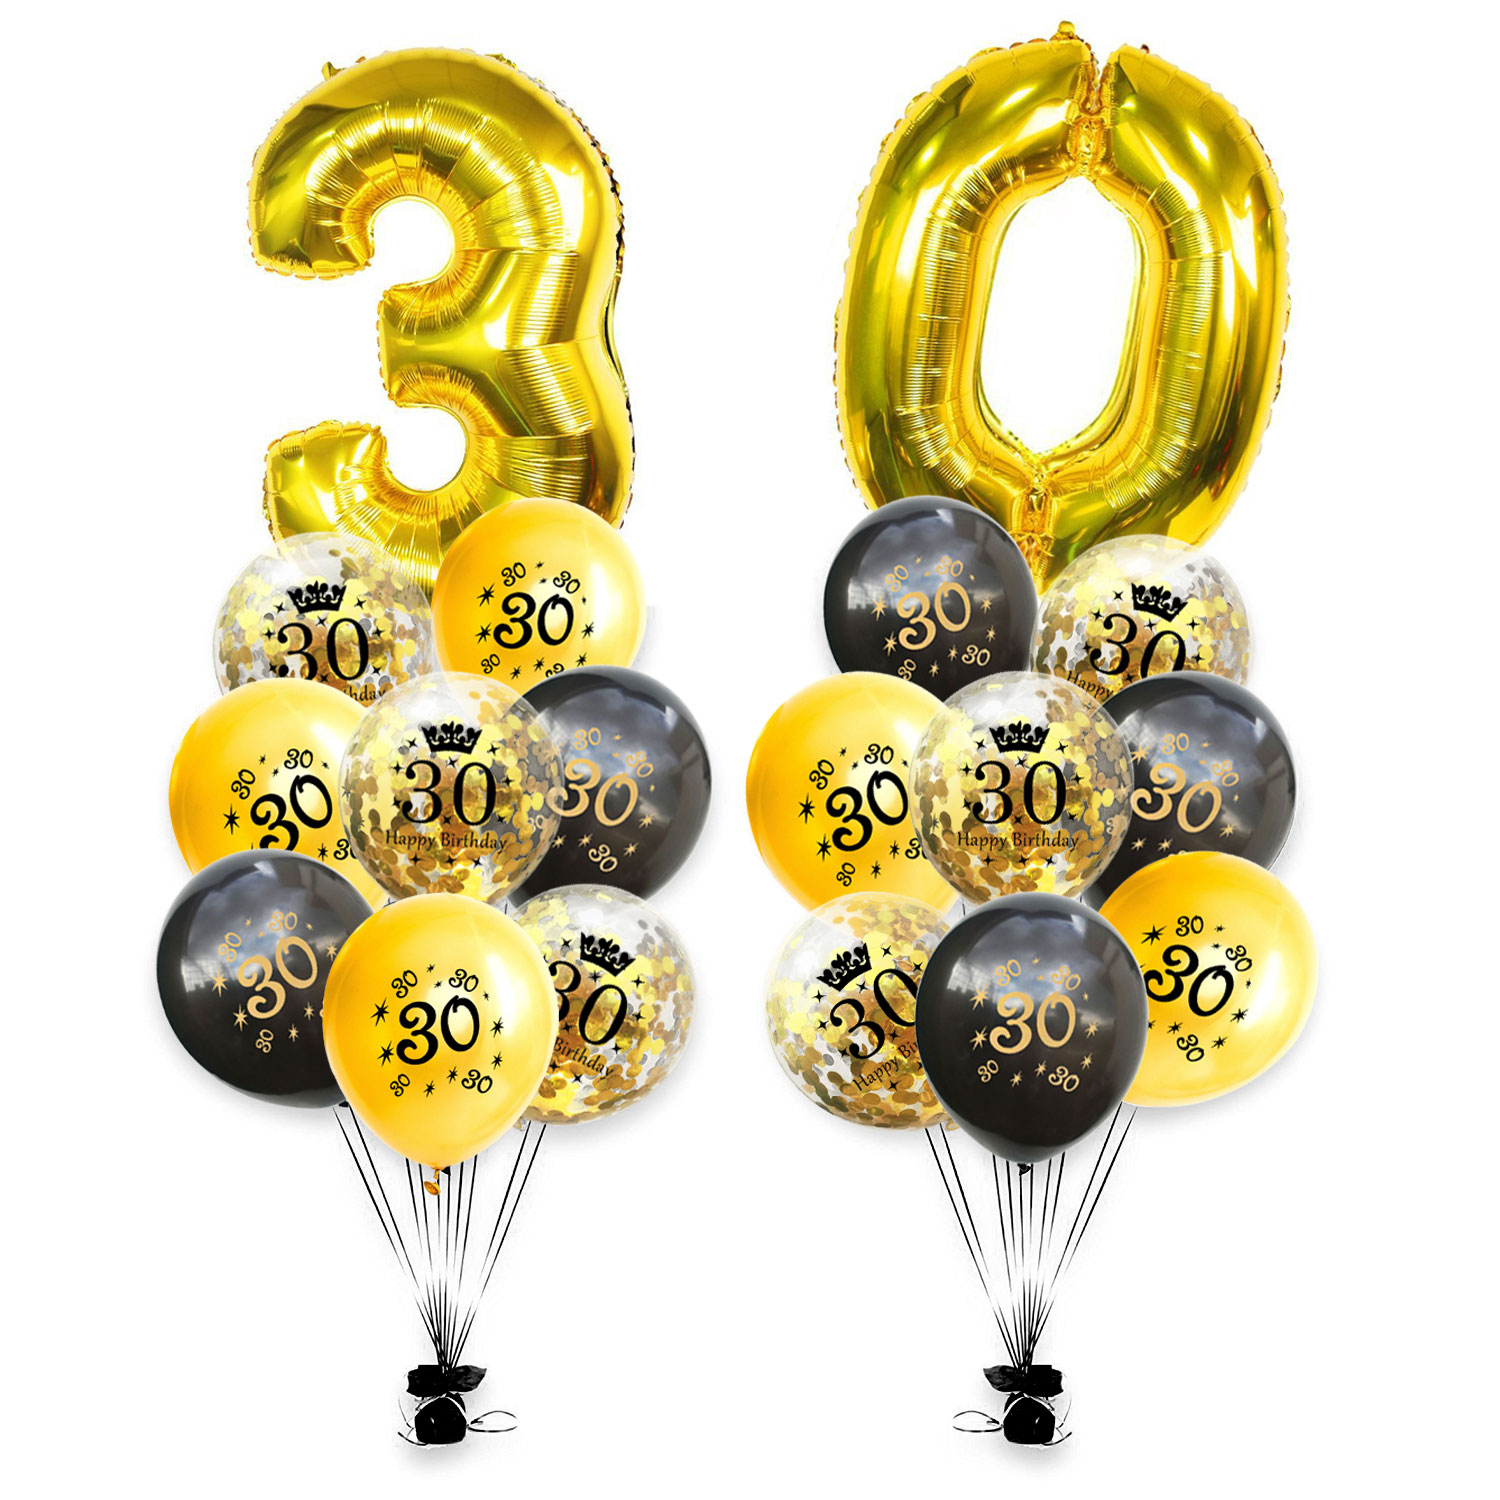 Happy 30th Birthday Party Balloons Banners /& Decorations AGE 30